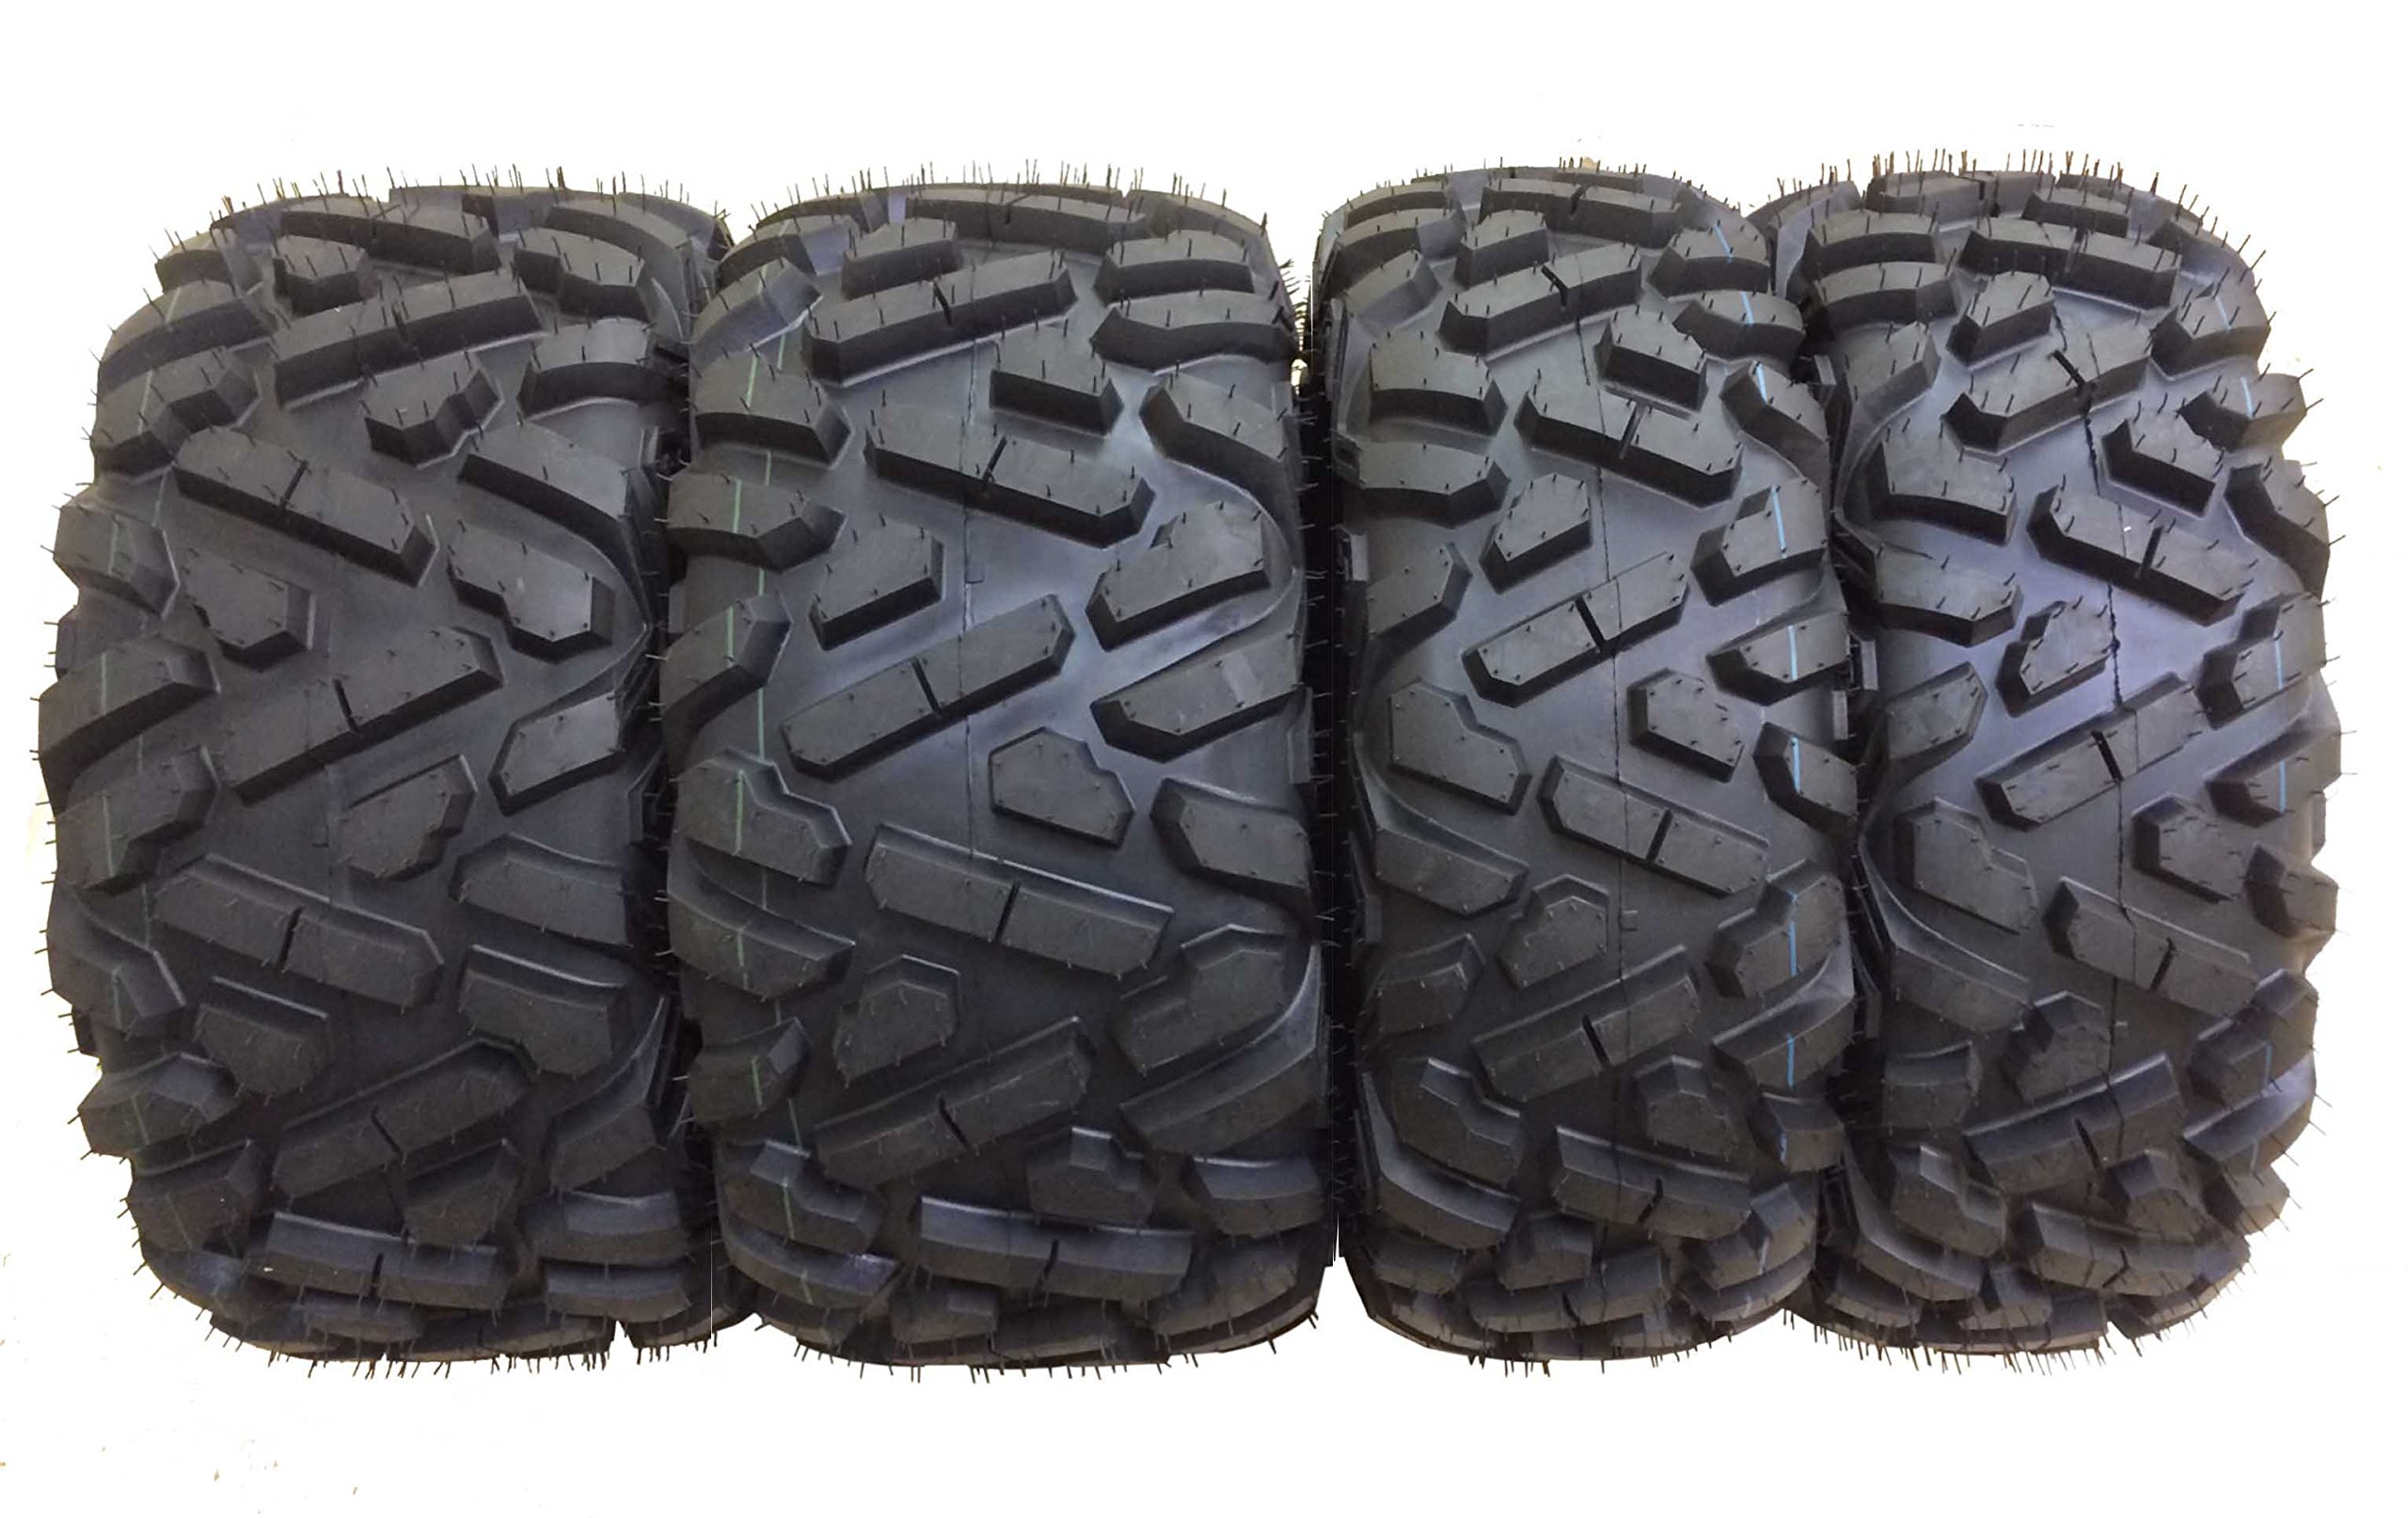 Set of 4 New WANDA ATV/UTV Tires 27x9-14 Front & 27x11-14 Rear /6PR P350 - 10171/10174 by Wanda (Image #1)